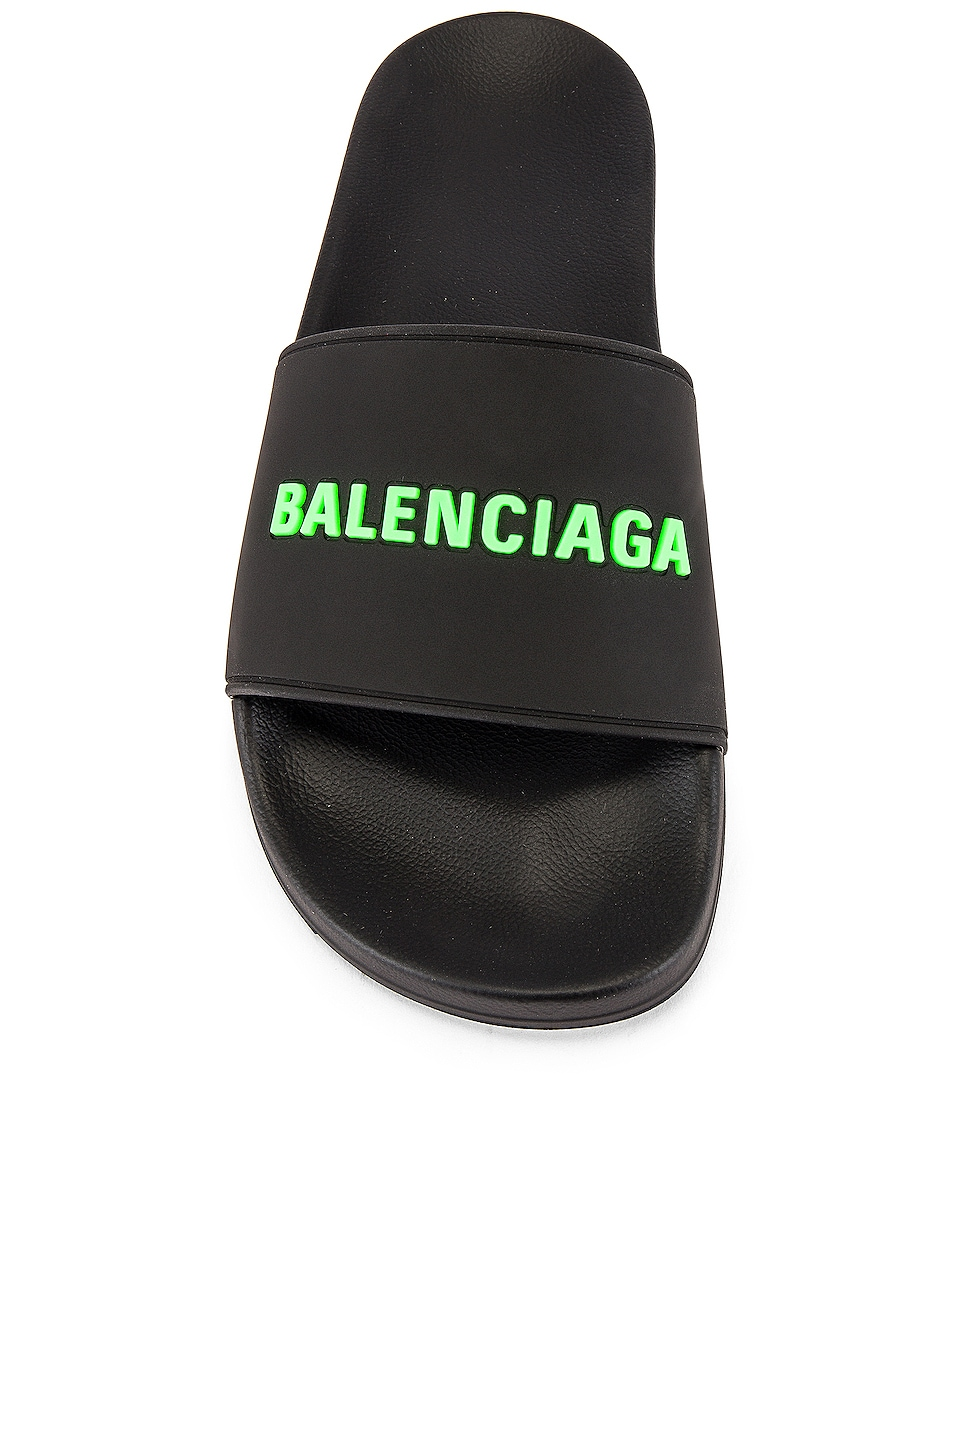 Image 4 of Balenciaga Rubber Logo Pool Slide in Black & Fluo Green